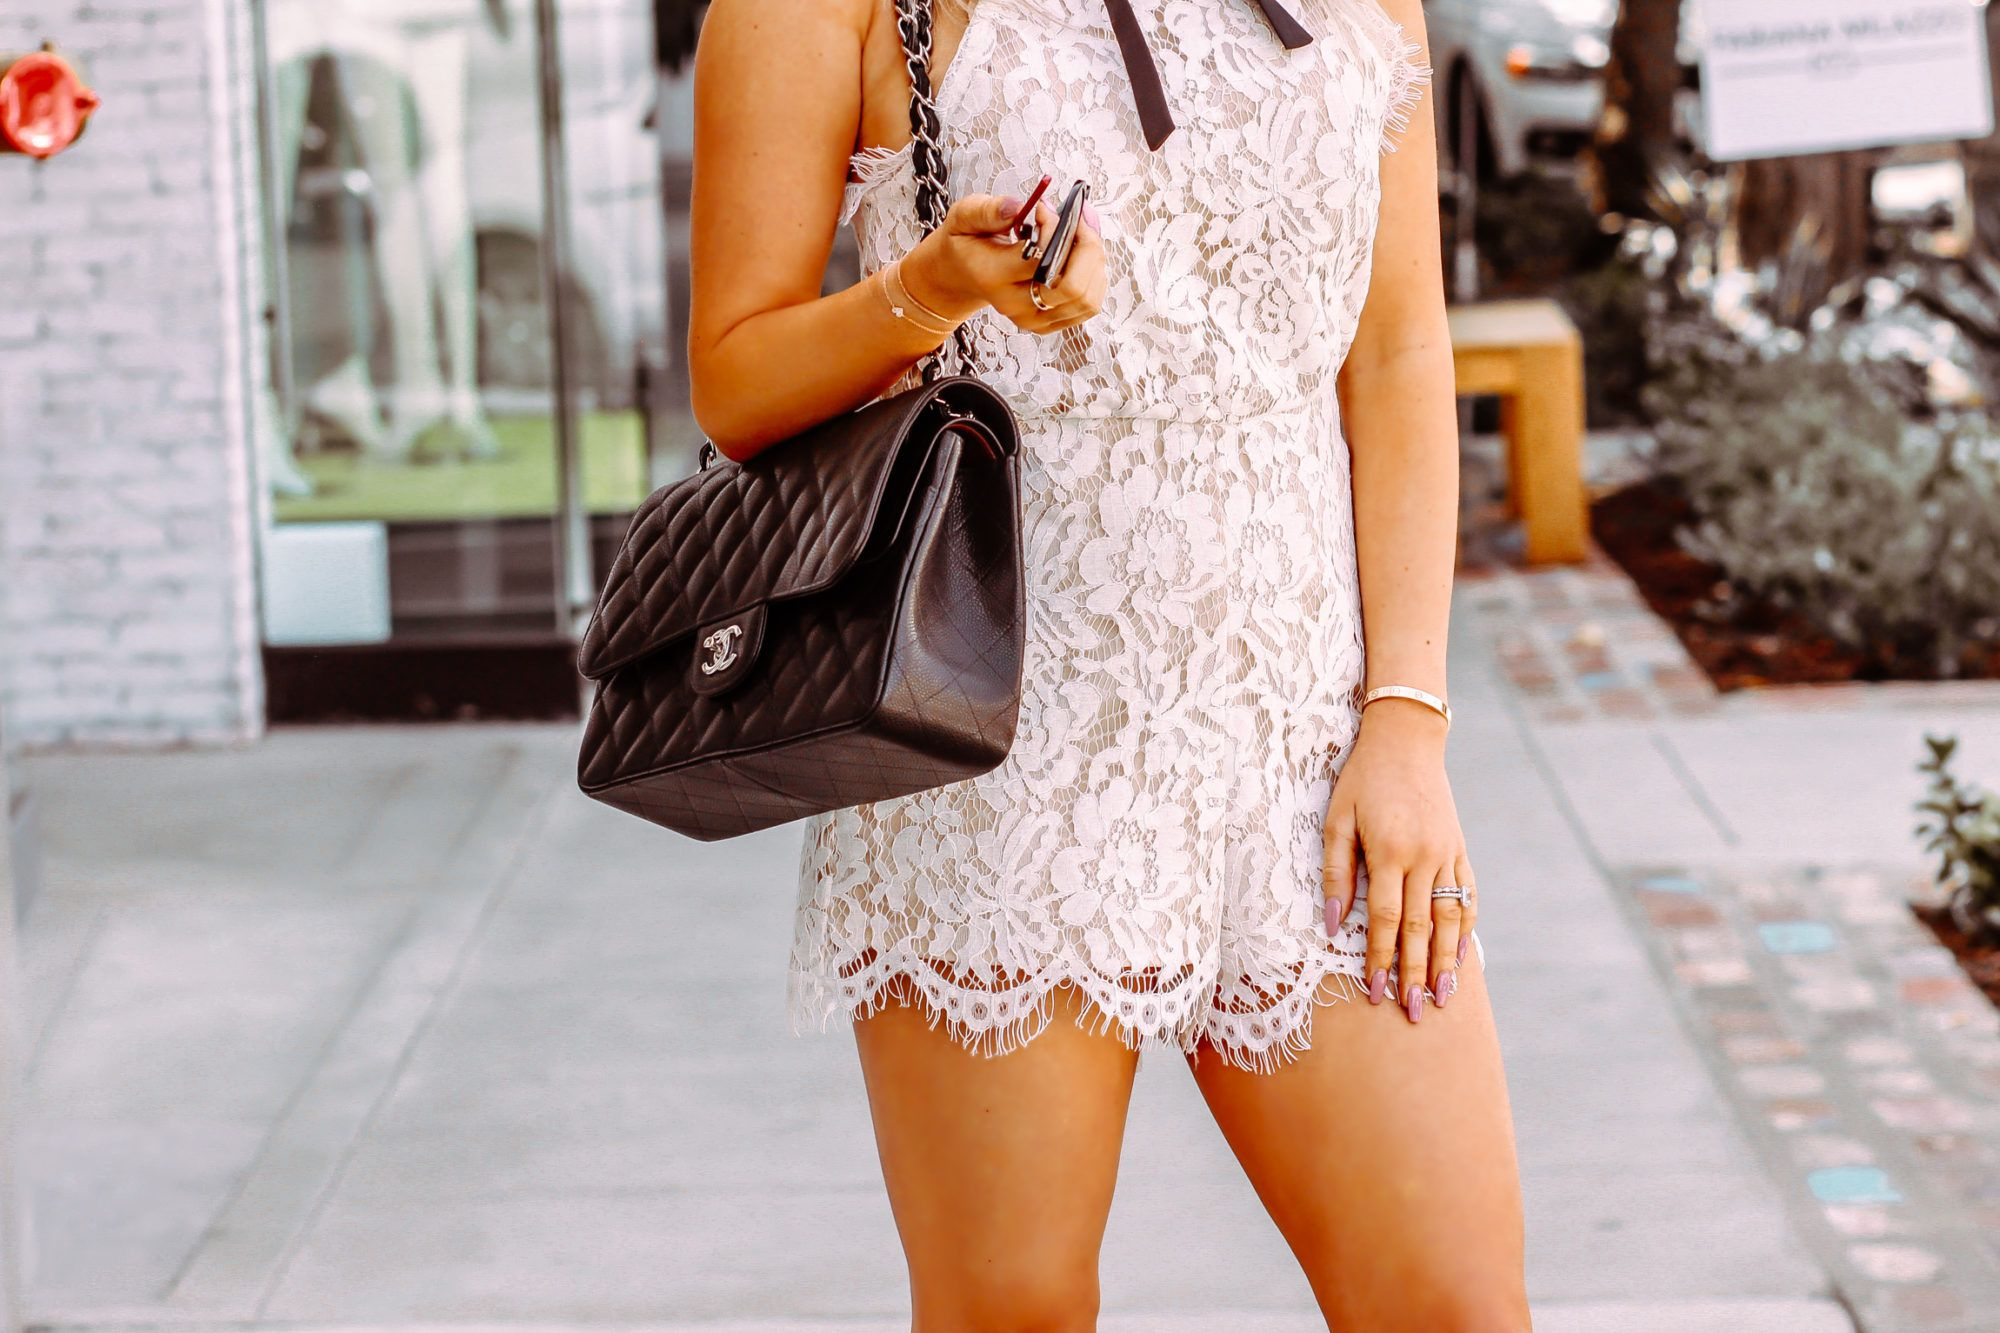 be4978c35986 White Lace Romper - Bridal Shower Outfit Inspo - Blondie in the City